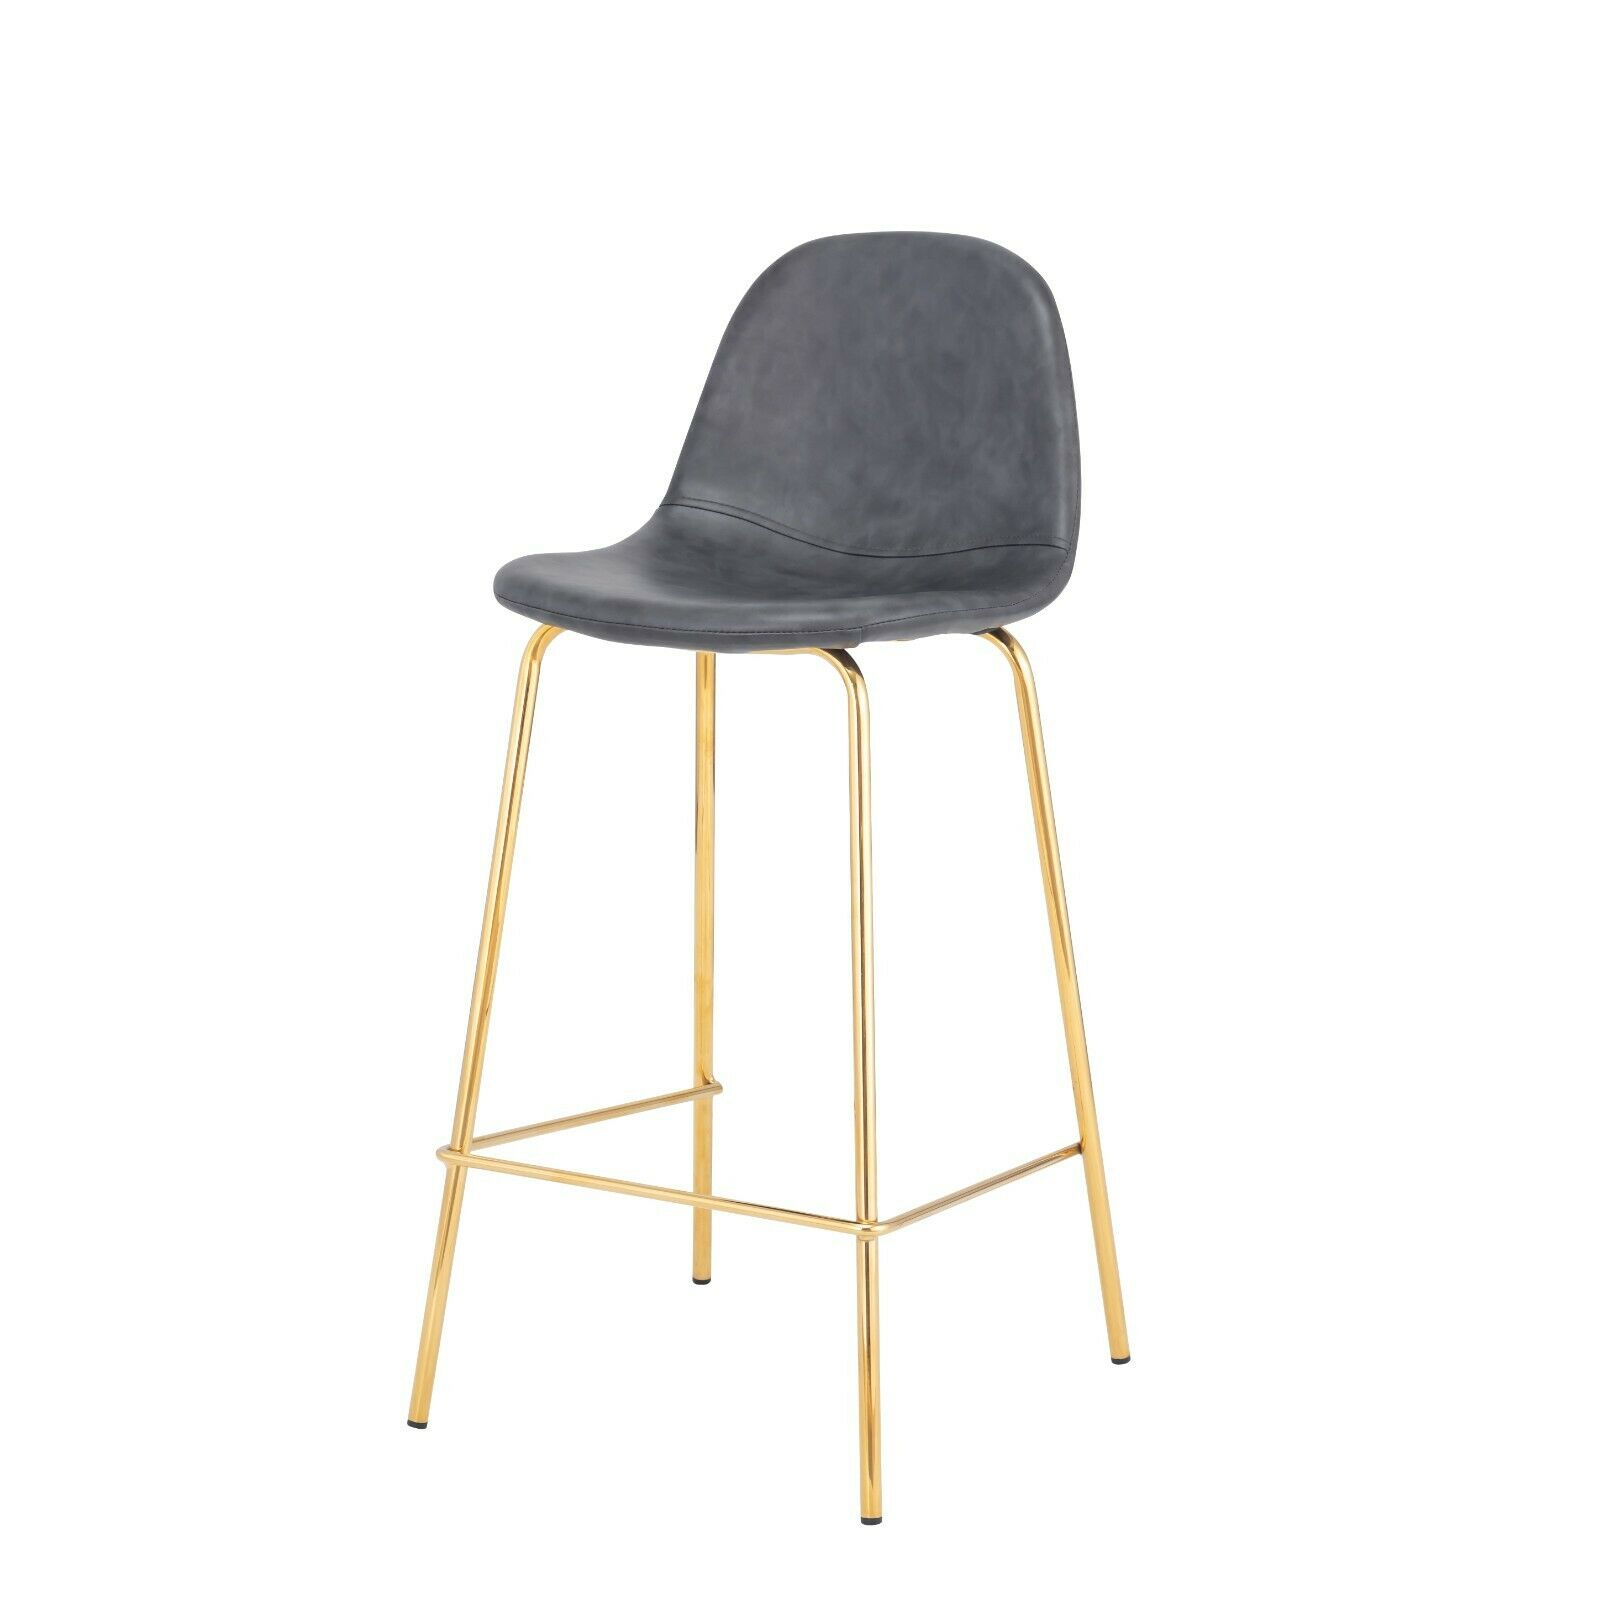 Terrific Smart Counter Stool In Distressed Grey Faux Leather 26 Seat Height Gold Frame Machost Co Dining Chair Design Ideas Machostcouk